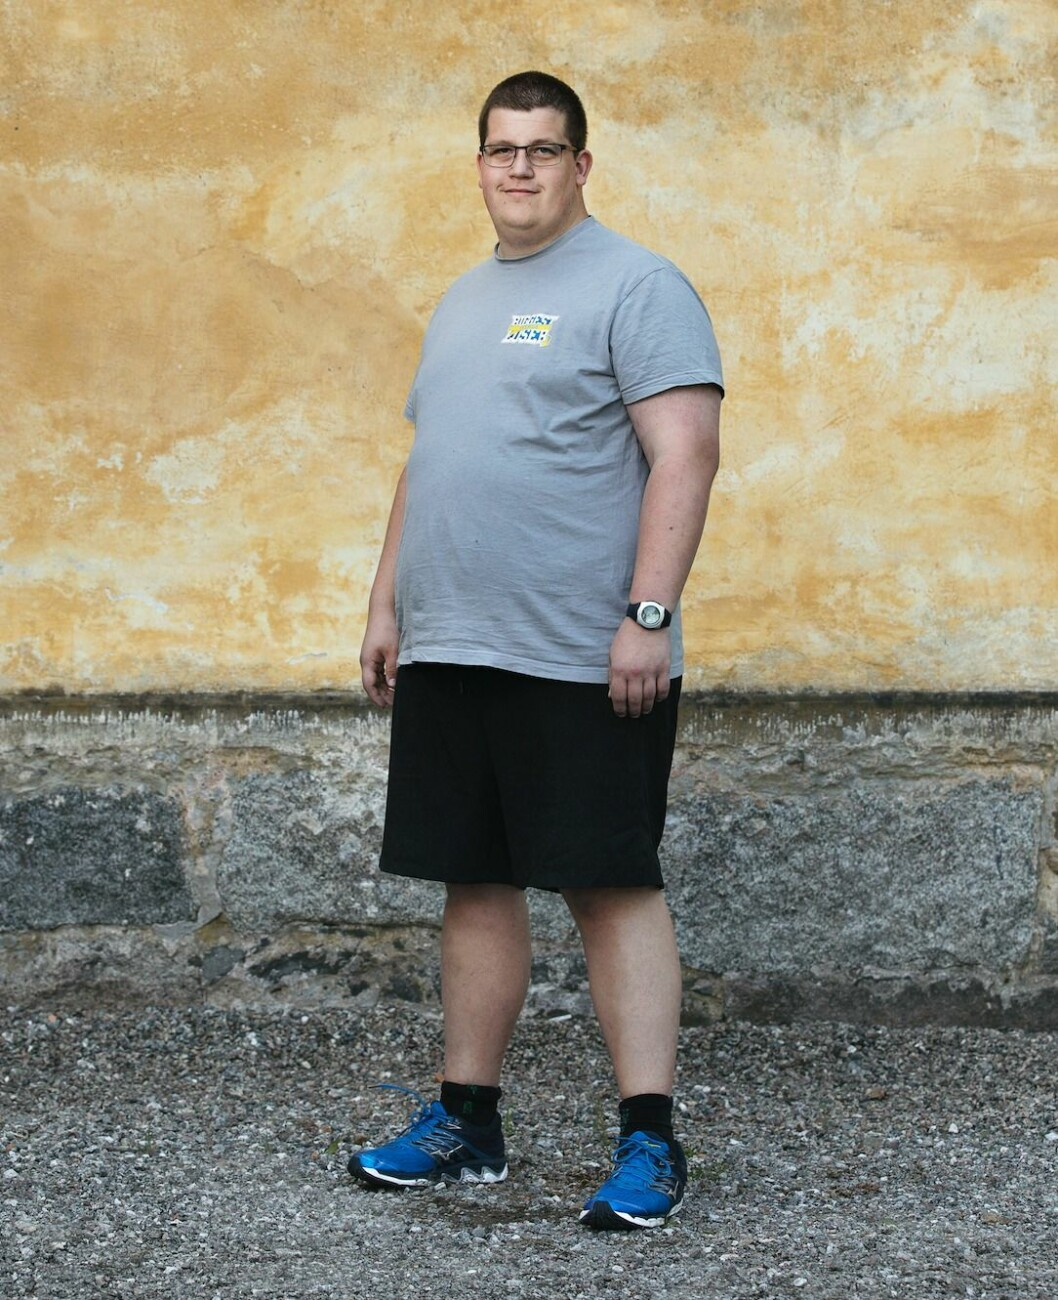 Simon Wahl, Sunne i Biggest loser 2020